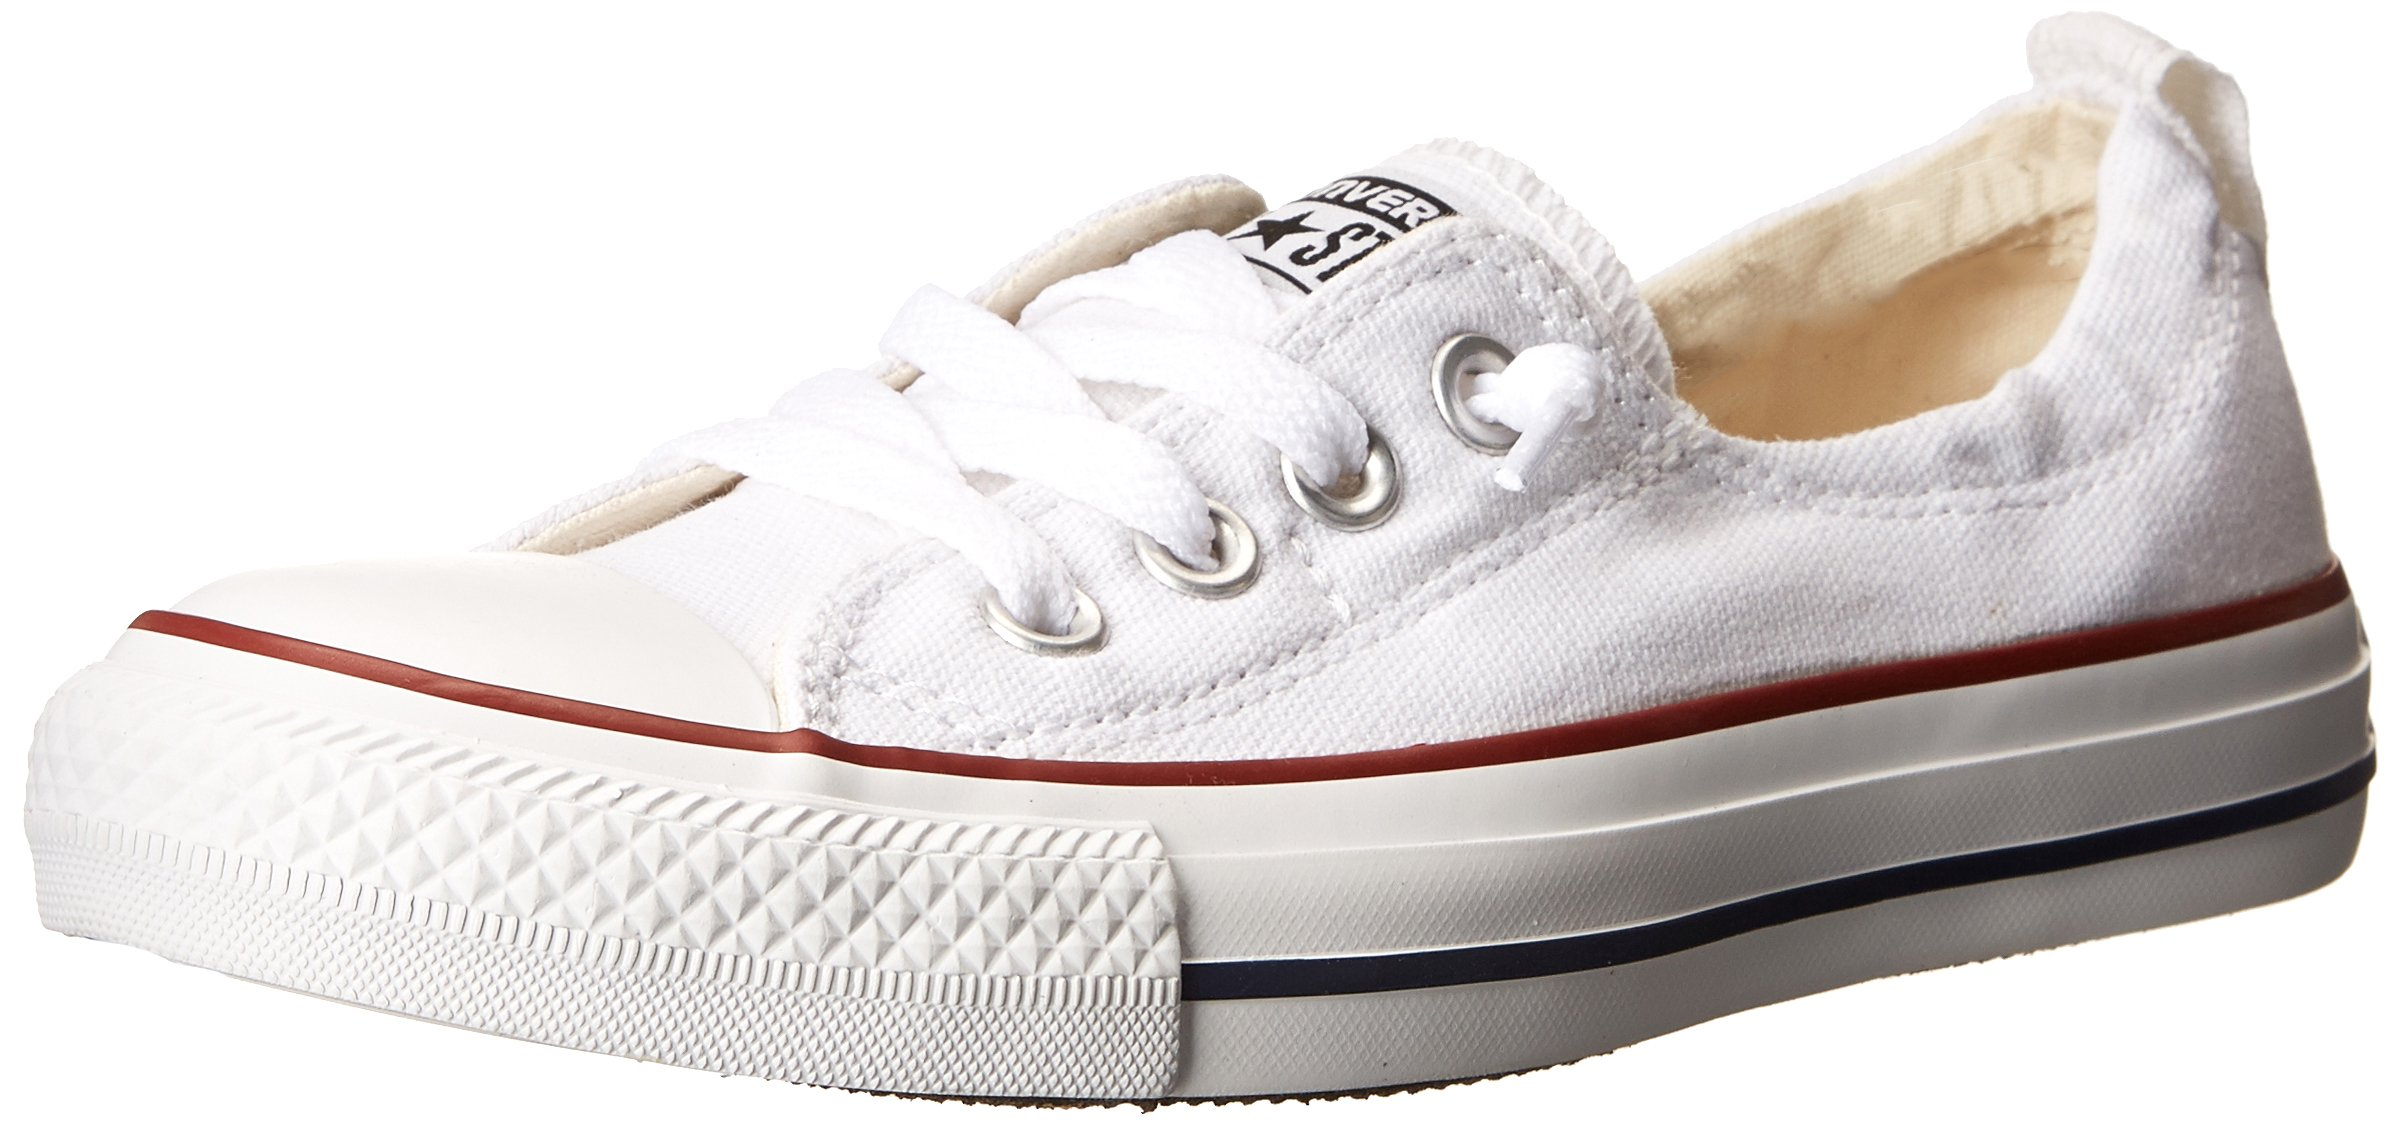 Converse Chuck Taylor All Star Shoreline White Lace-Up Sneaker - 7 B(M) US